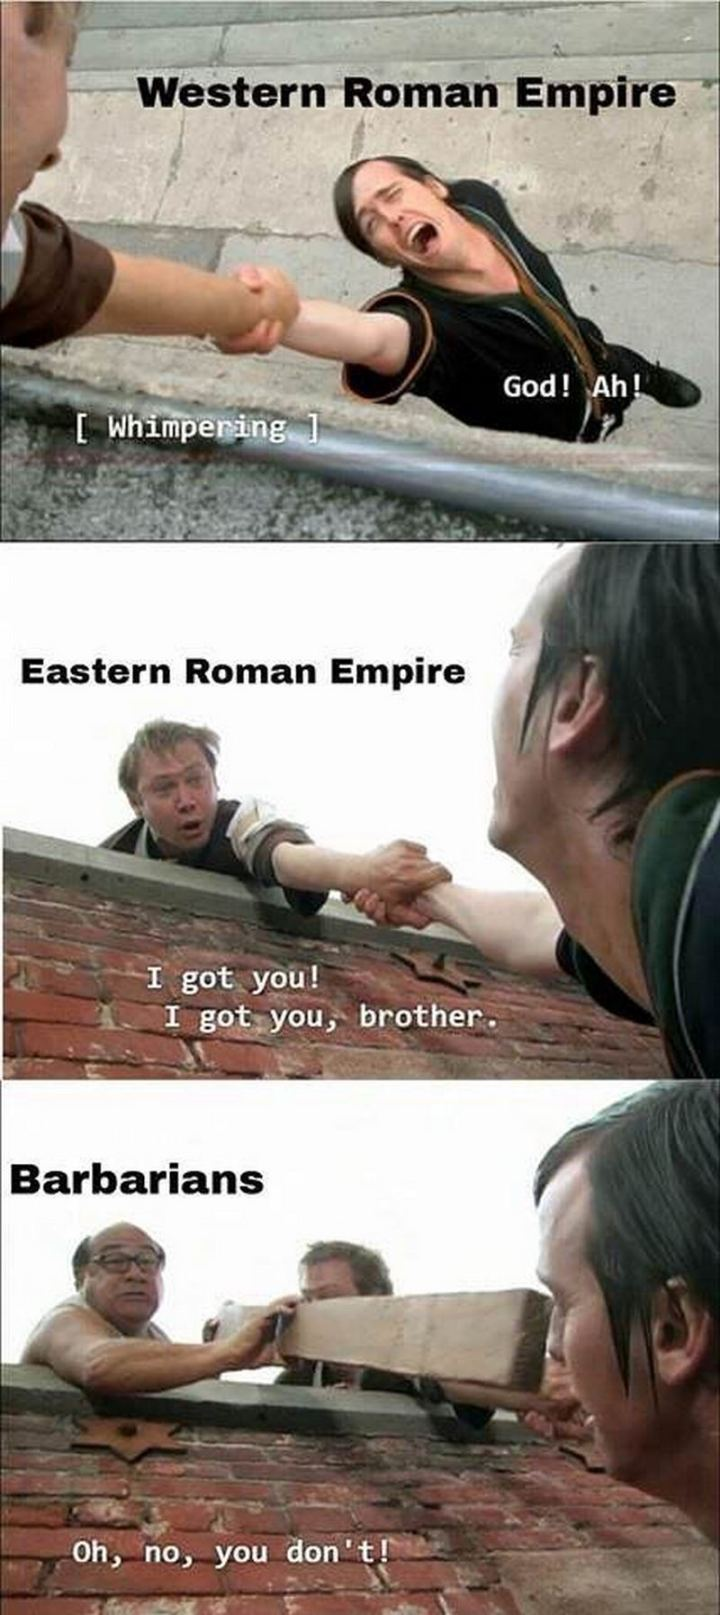 "55 Funny History Memes - ""Western Roman Empire: [whimpering] God! Ah! Eastern Roman Empire: I got you! I got you, brother. Barbarians: Oh, no, you don't!"""